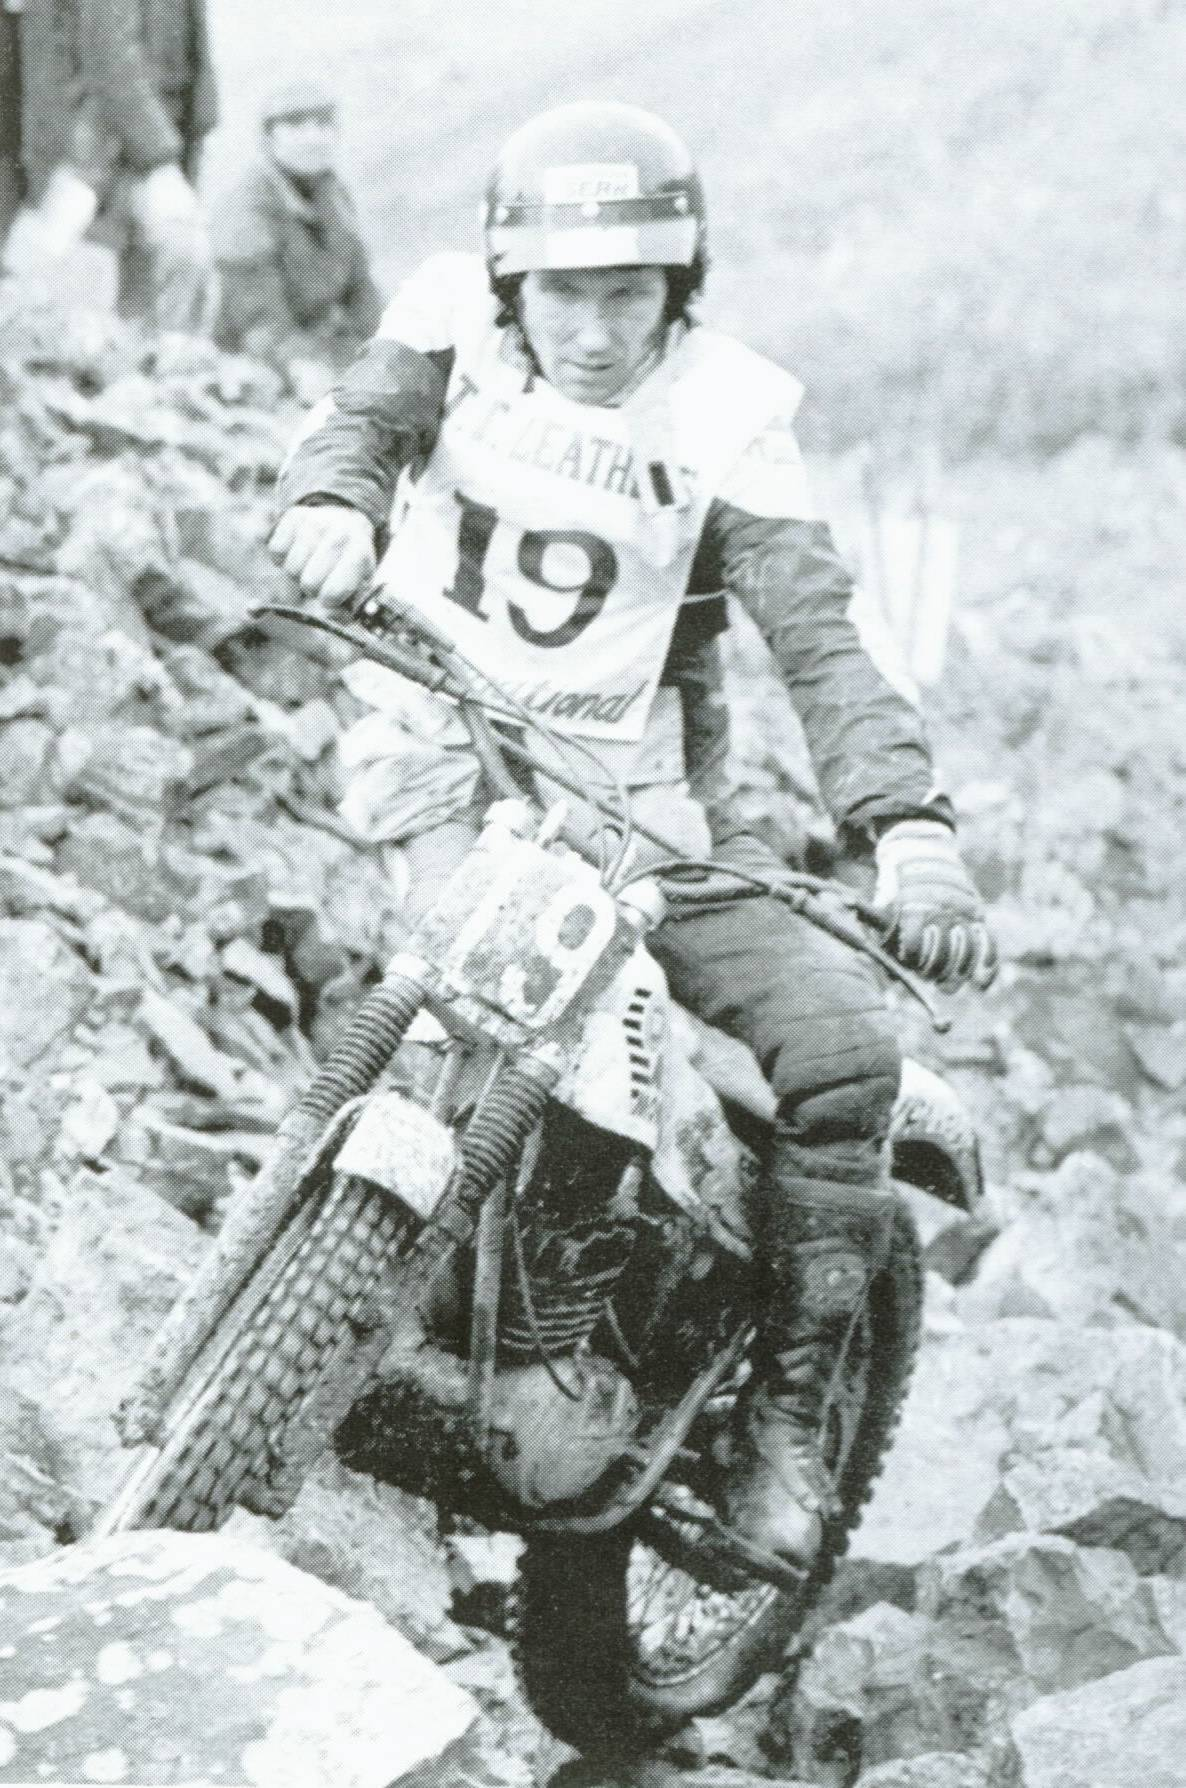 1981 - Scott - Rock Garden - Barry Robinson